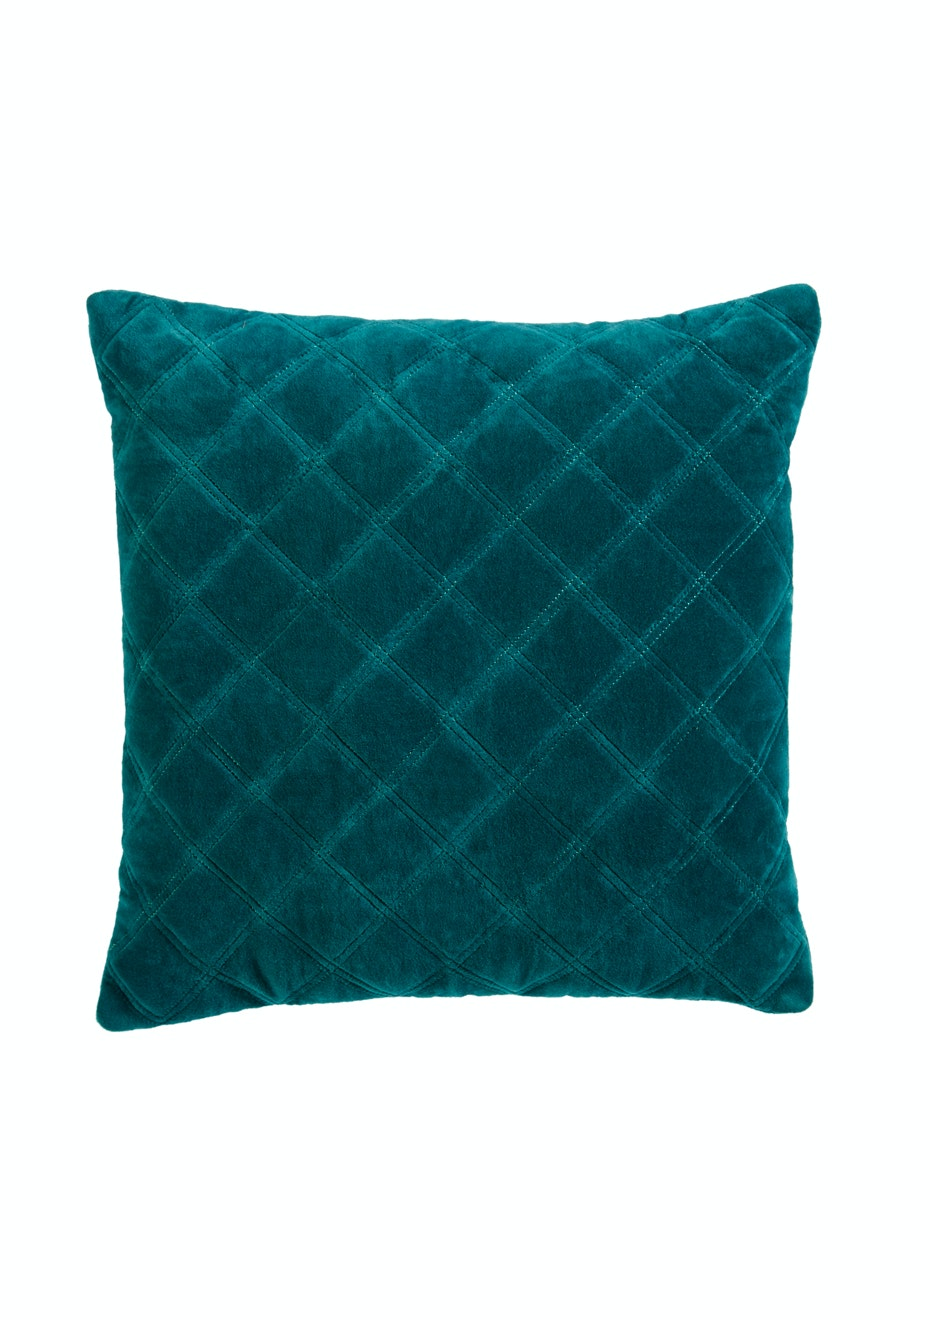 Bedding House Vercors Velvet Dark Green Cushion